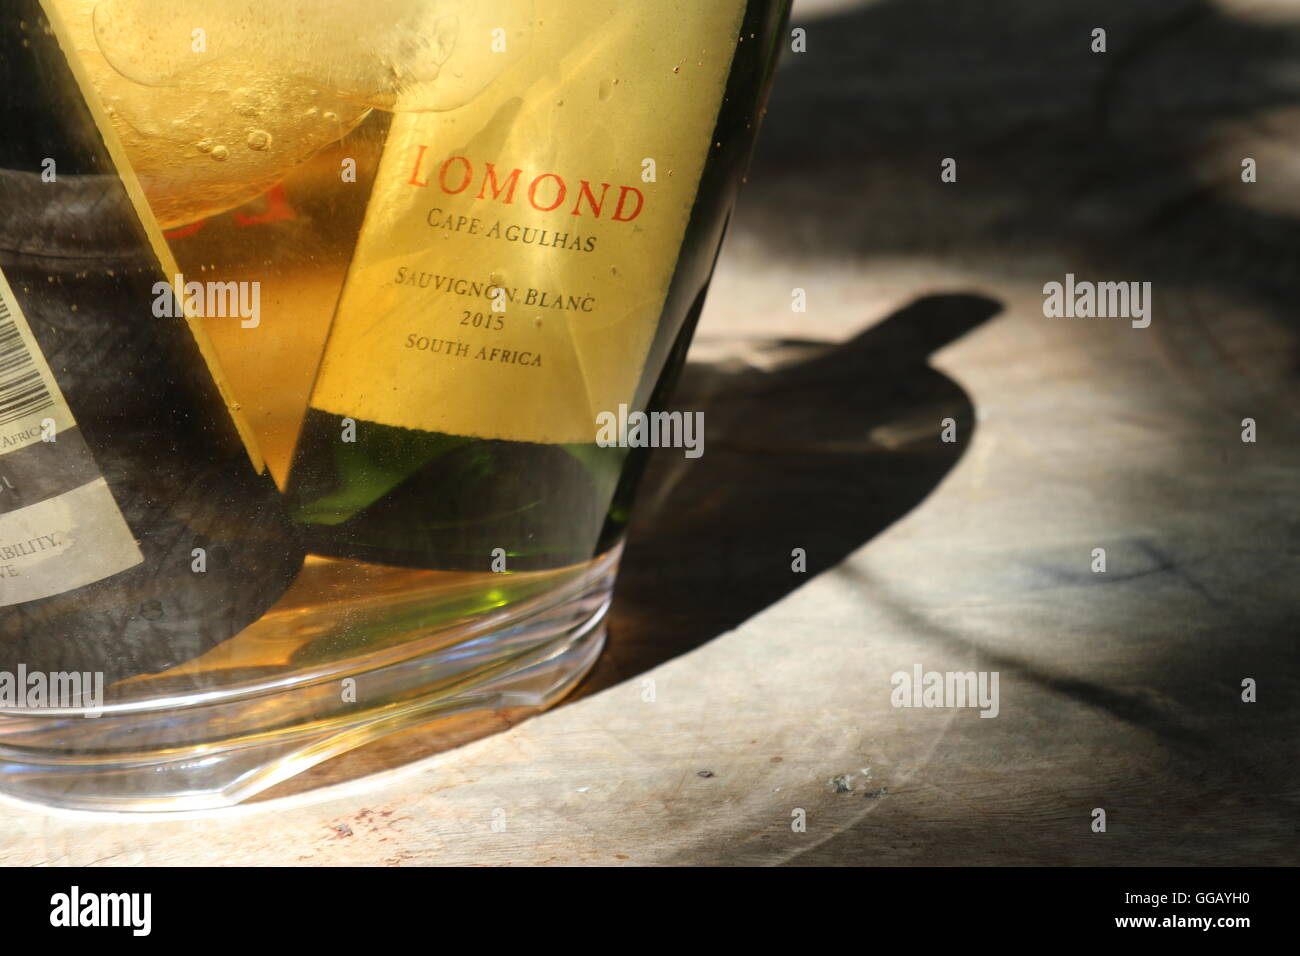 bottles in a wine cooler at Lomond VIneyard, Cape Agulhas, South Africa - Stock Image